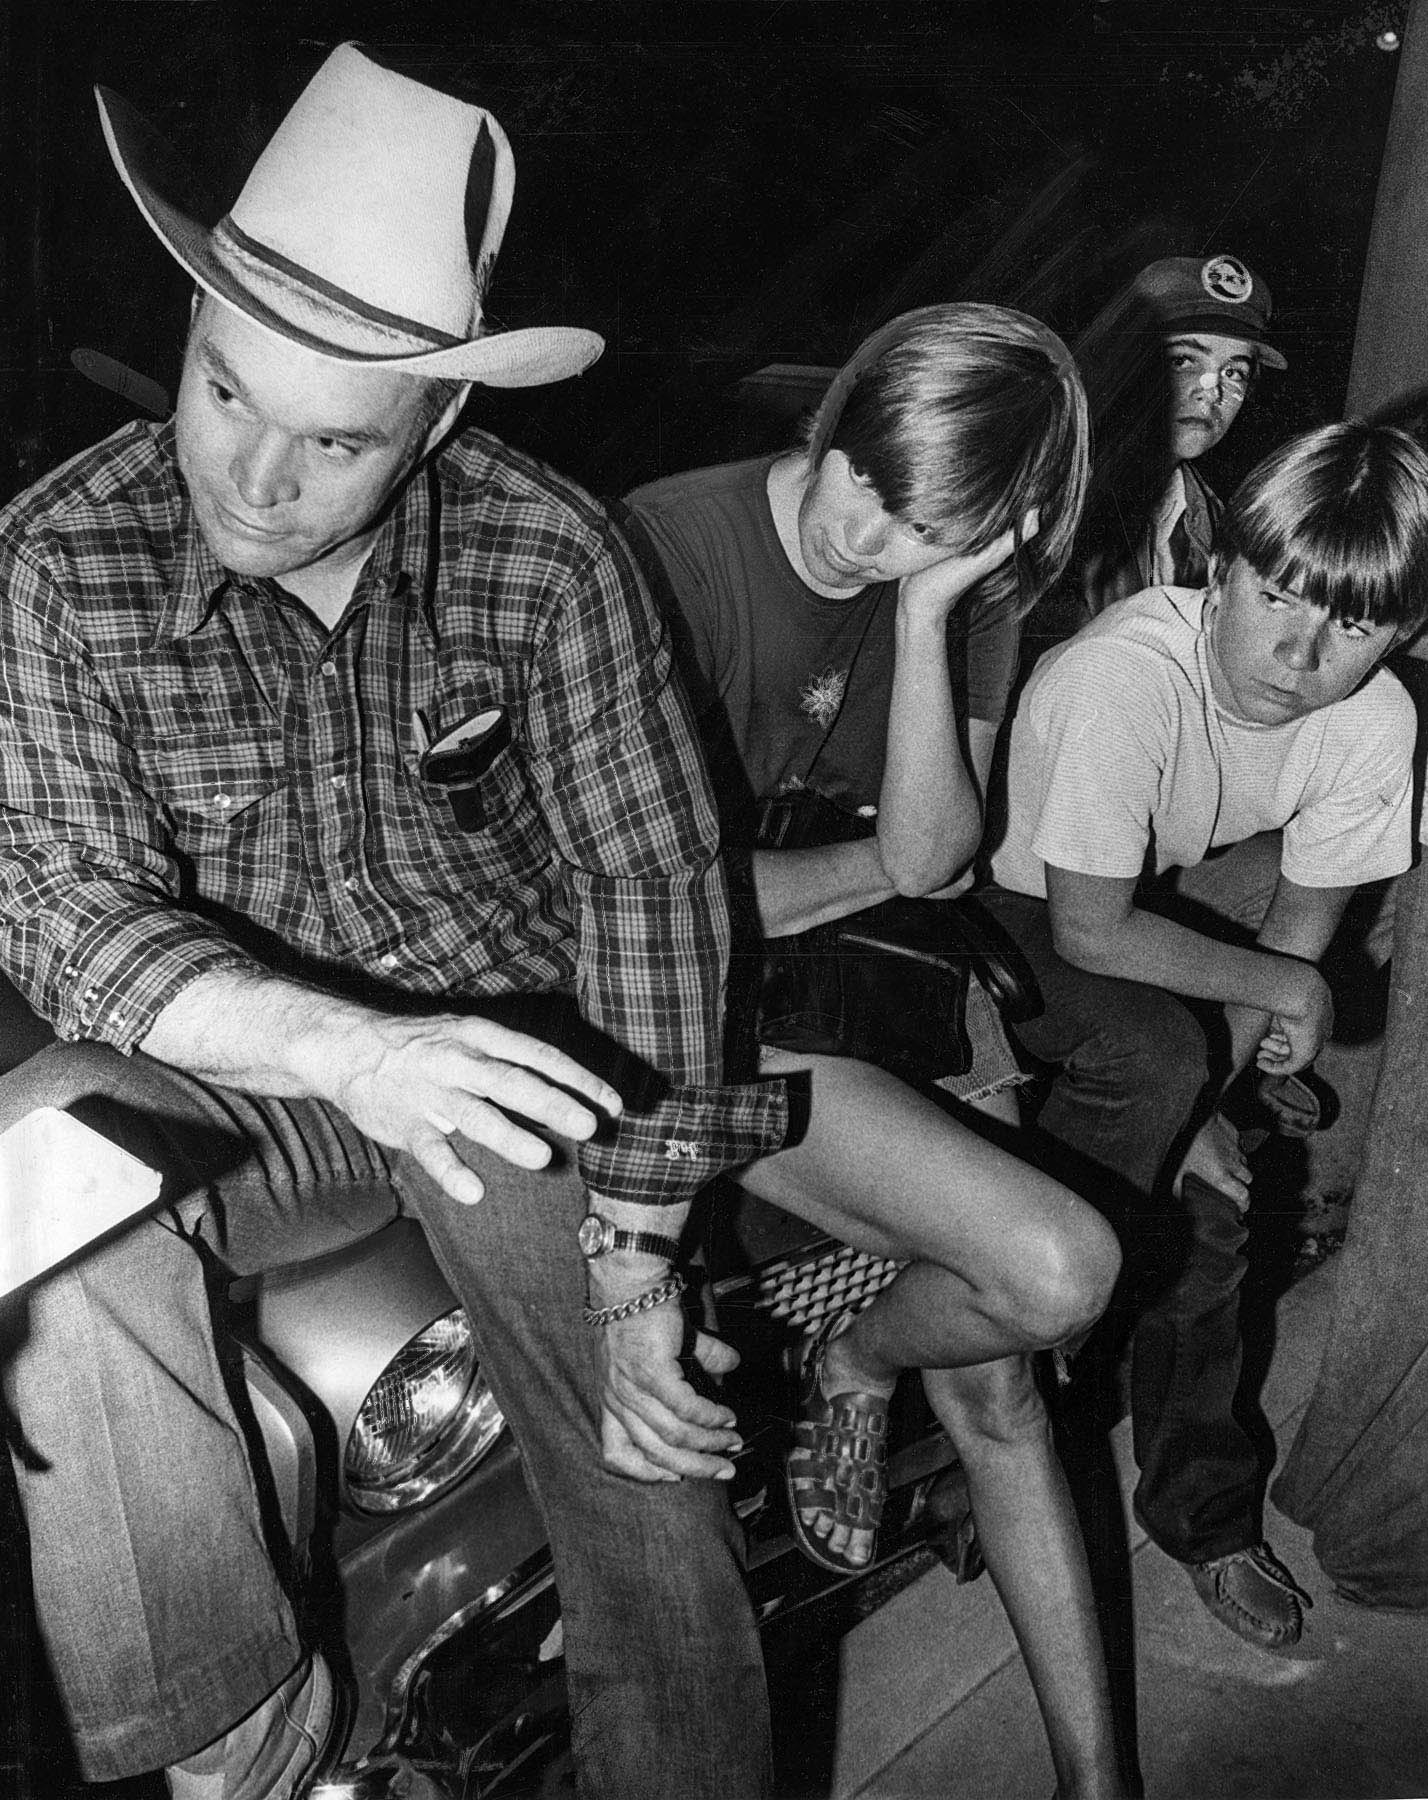 July 17, 1976: Bob, left, and Carol Marshall talk to a reporter while waiting at command post for re